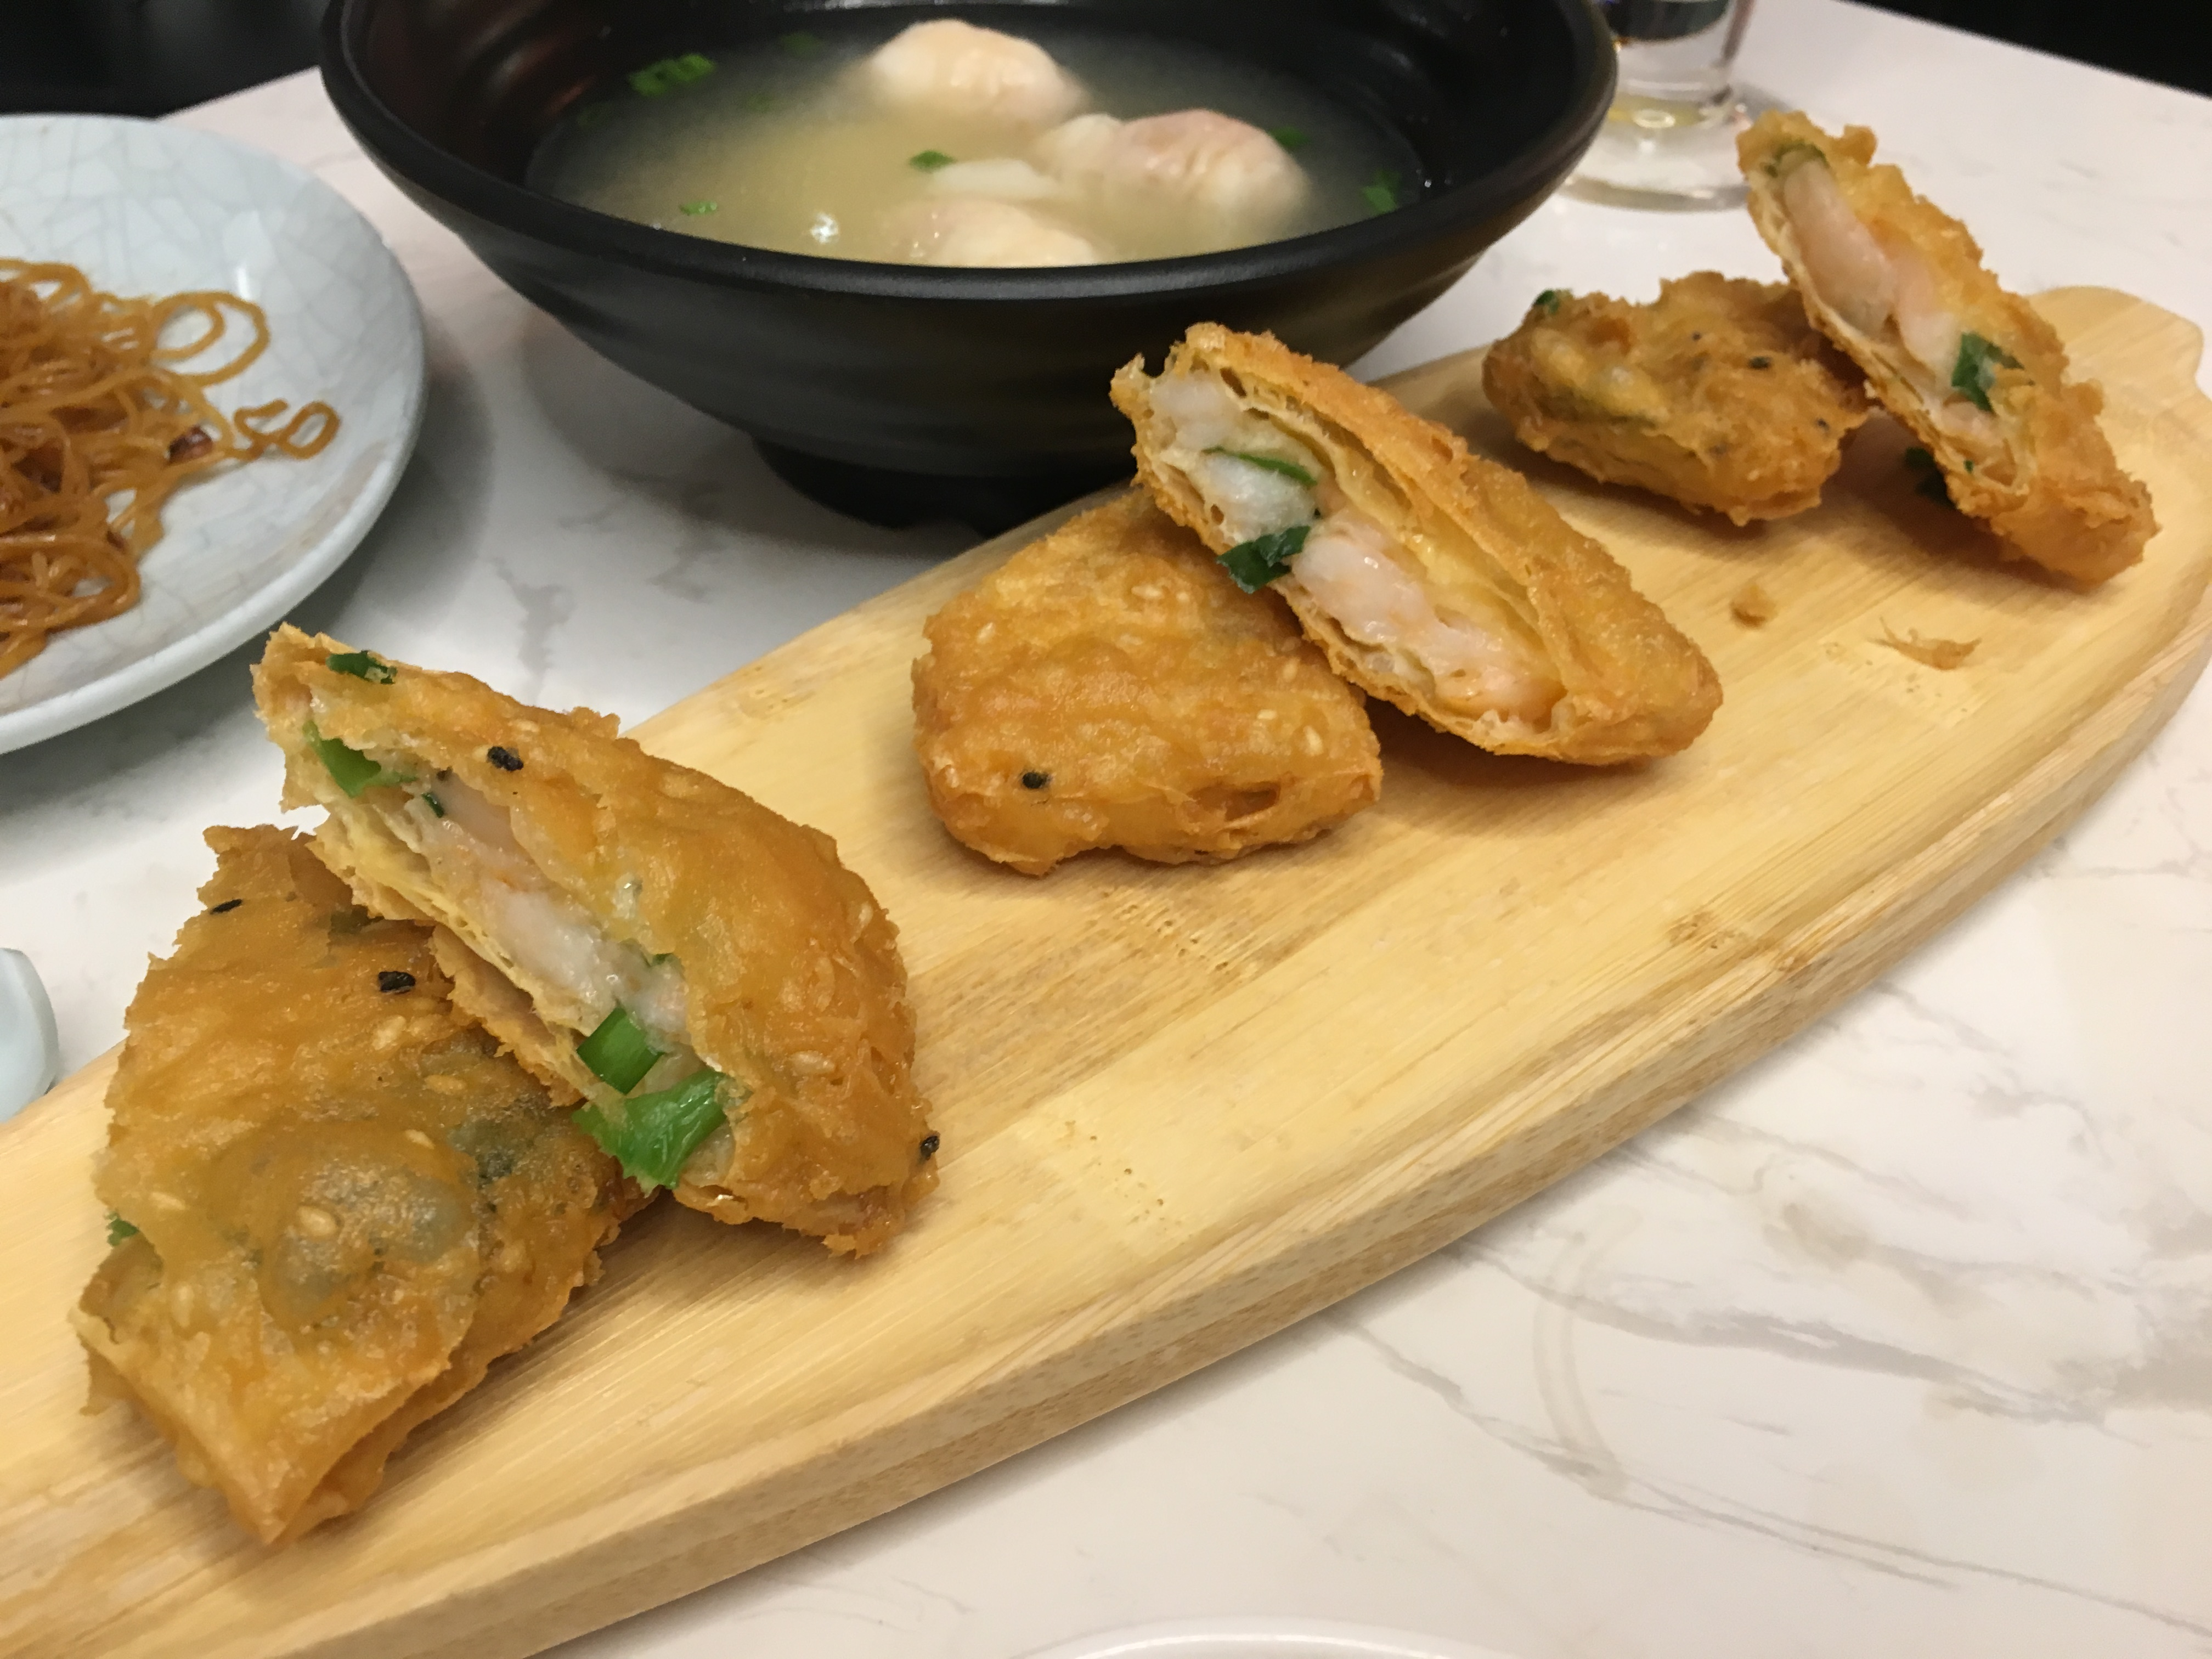 The Dim Sum Place - Fried Beancurd Skin with Prawn and Fish Paste